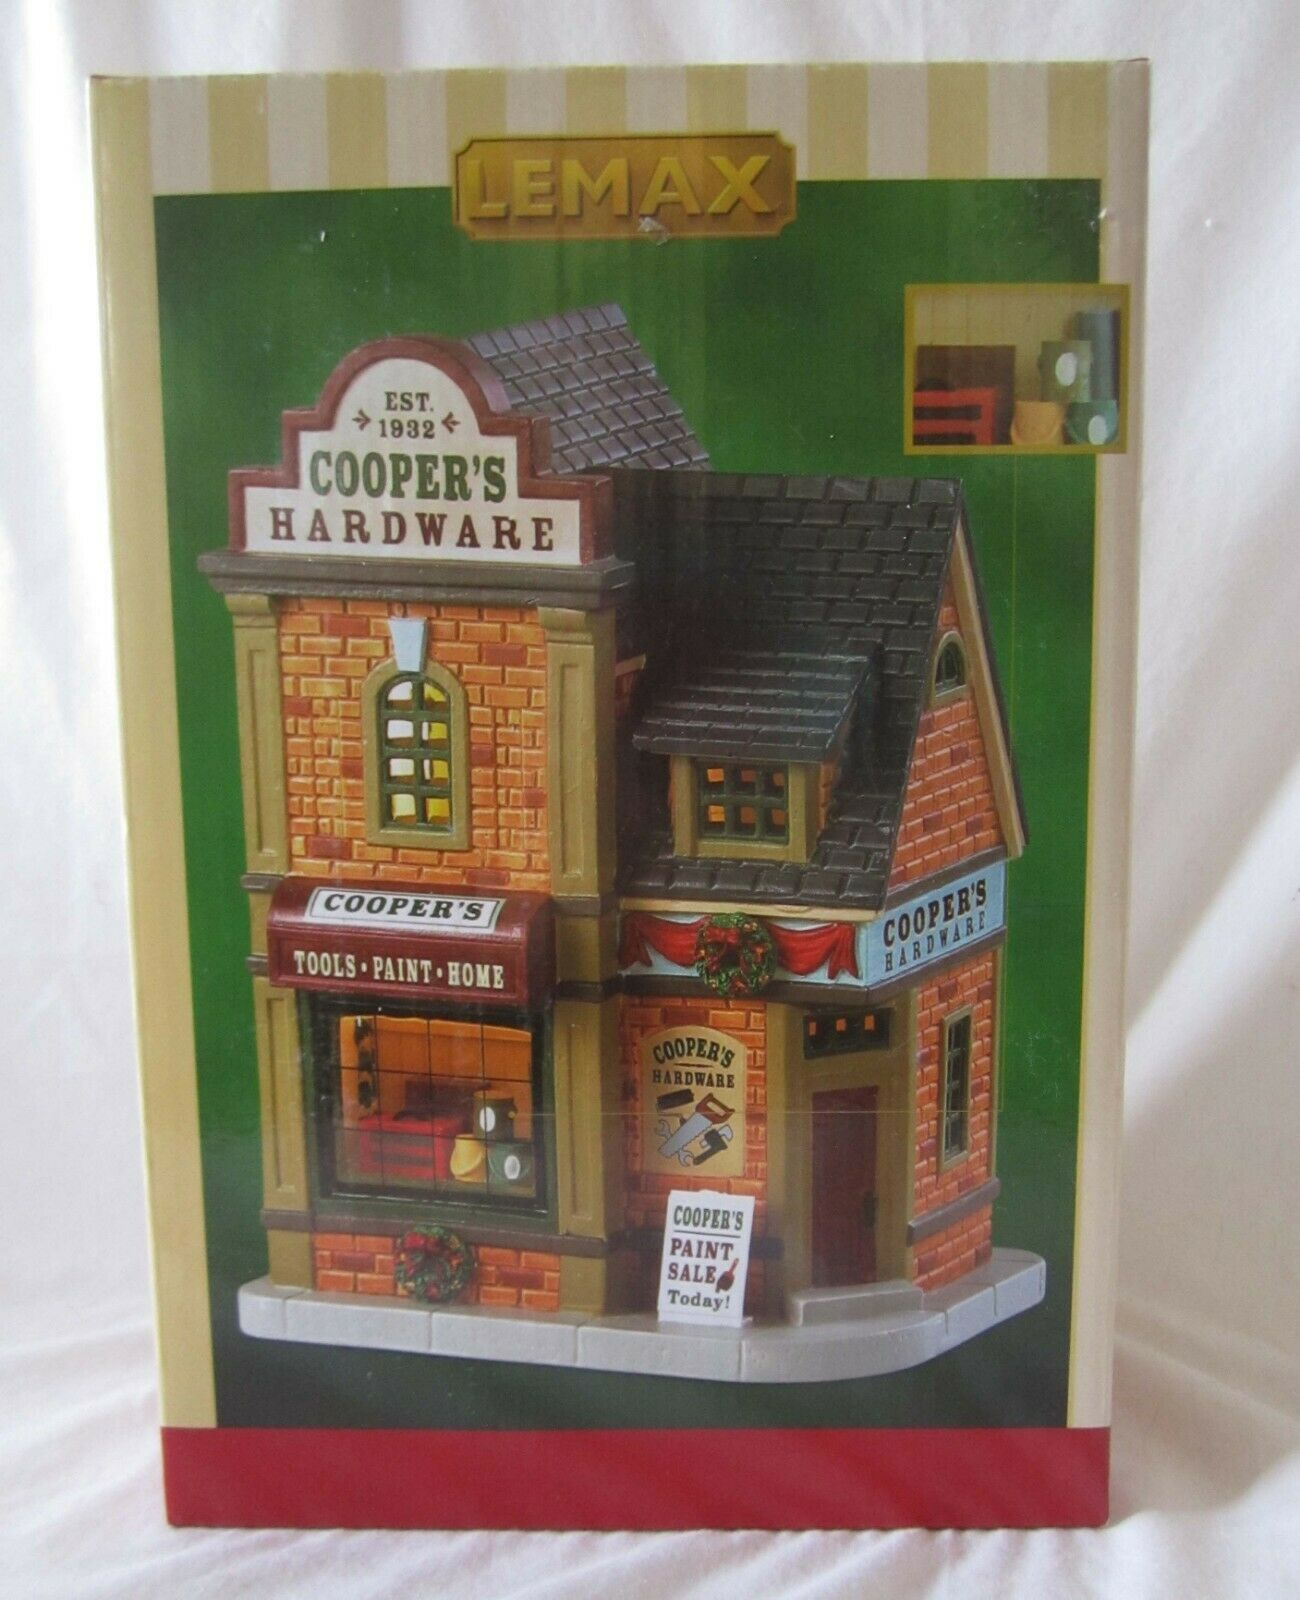 Lemax Christmas Village COOPER'S HARDWARE     85415 @2018 NEW f00383